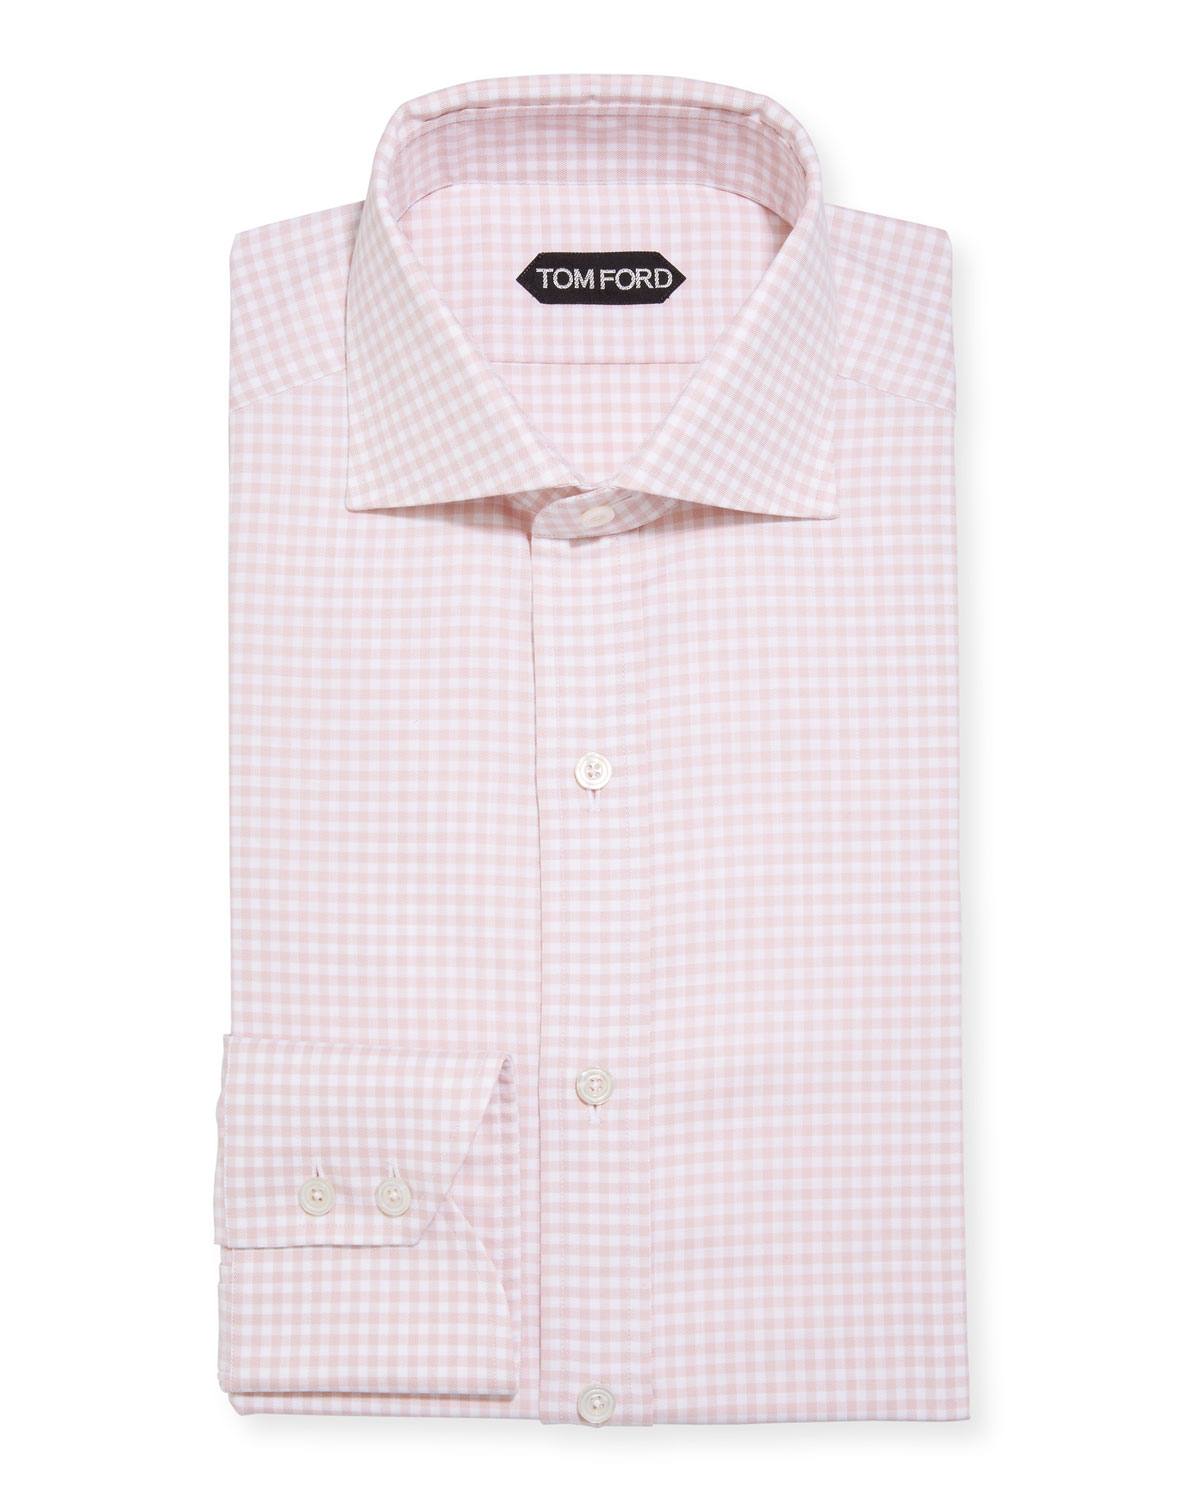 Tom Ford Cottons MEN'S GINGHAM CHECK DRESS SHIRT